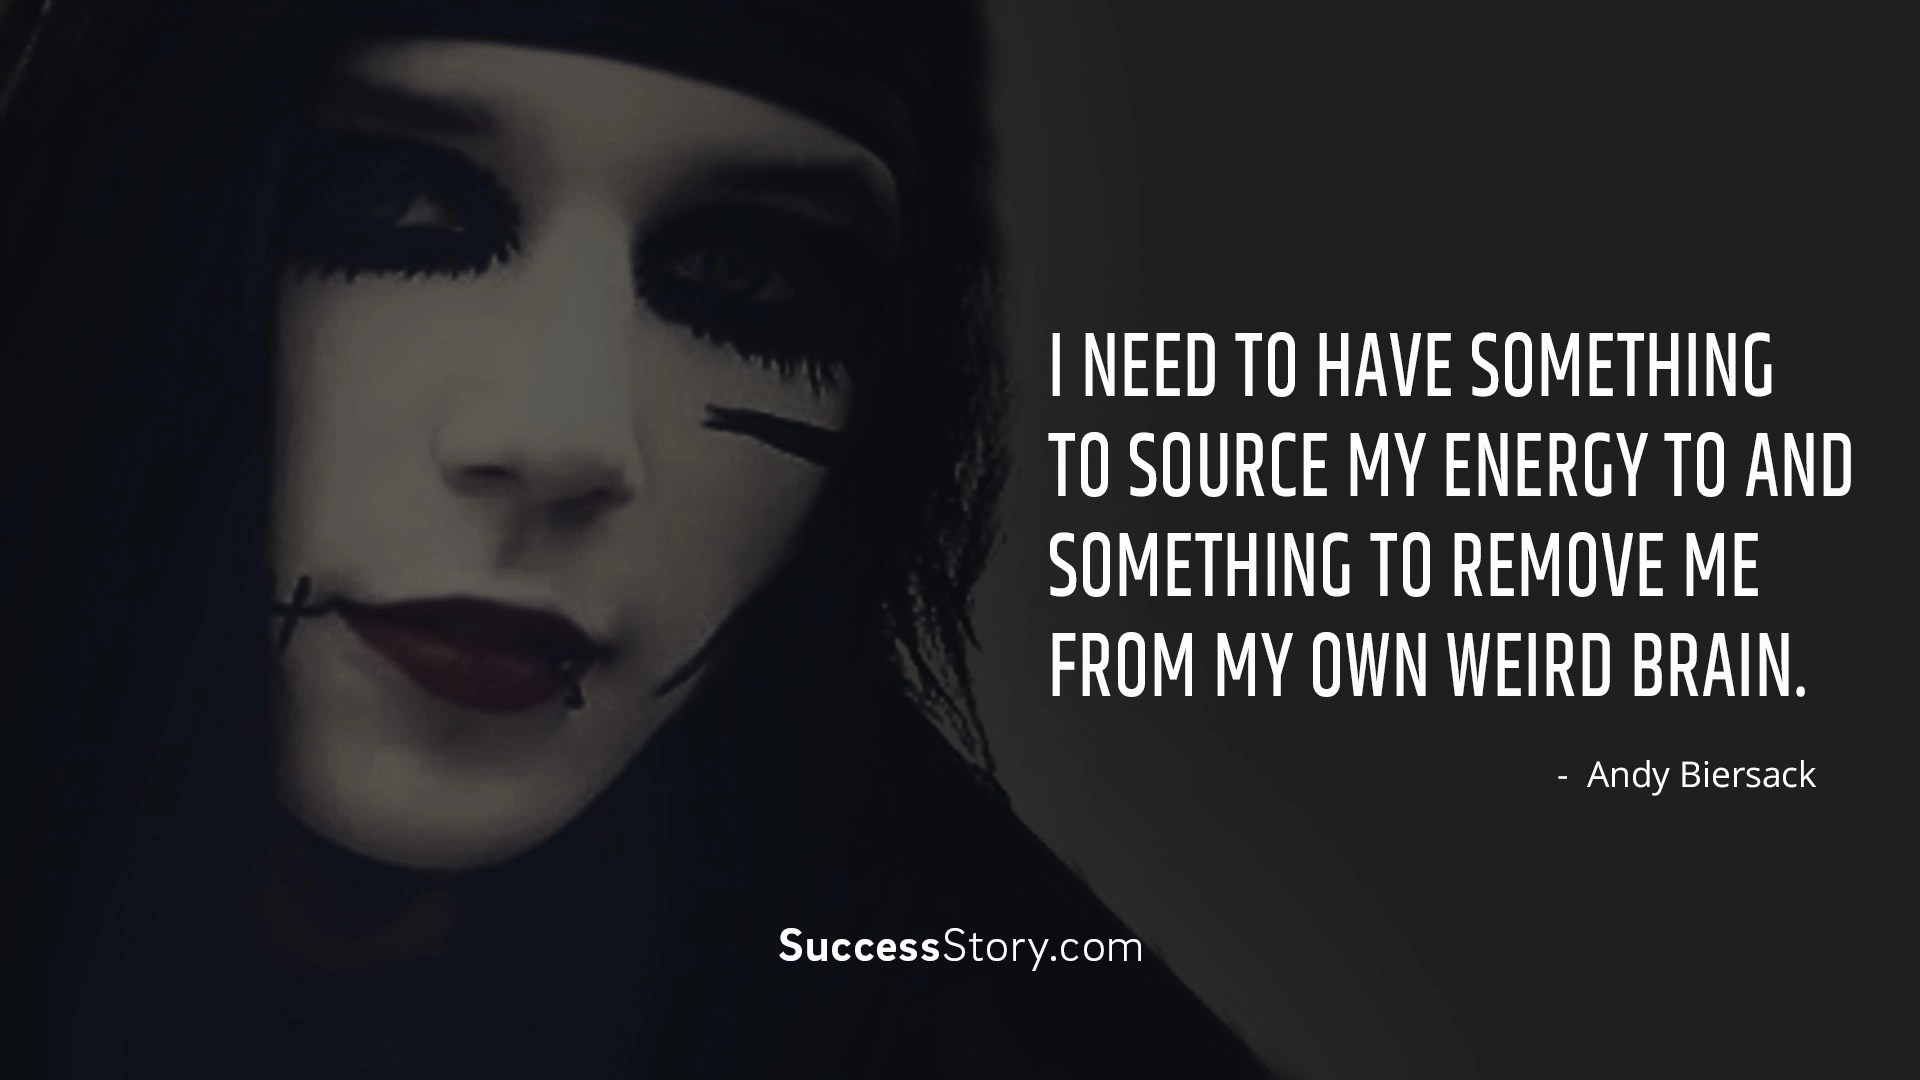 Black Veil Brides Live Wallpaper 12 Famous Andy Biersack Quotes Successstory